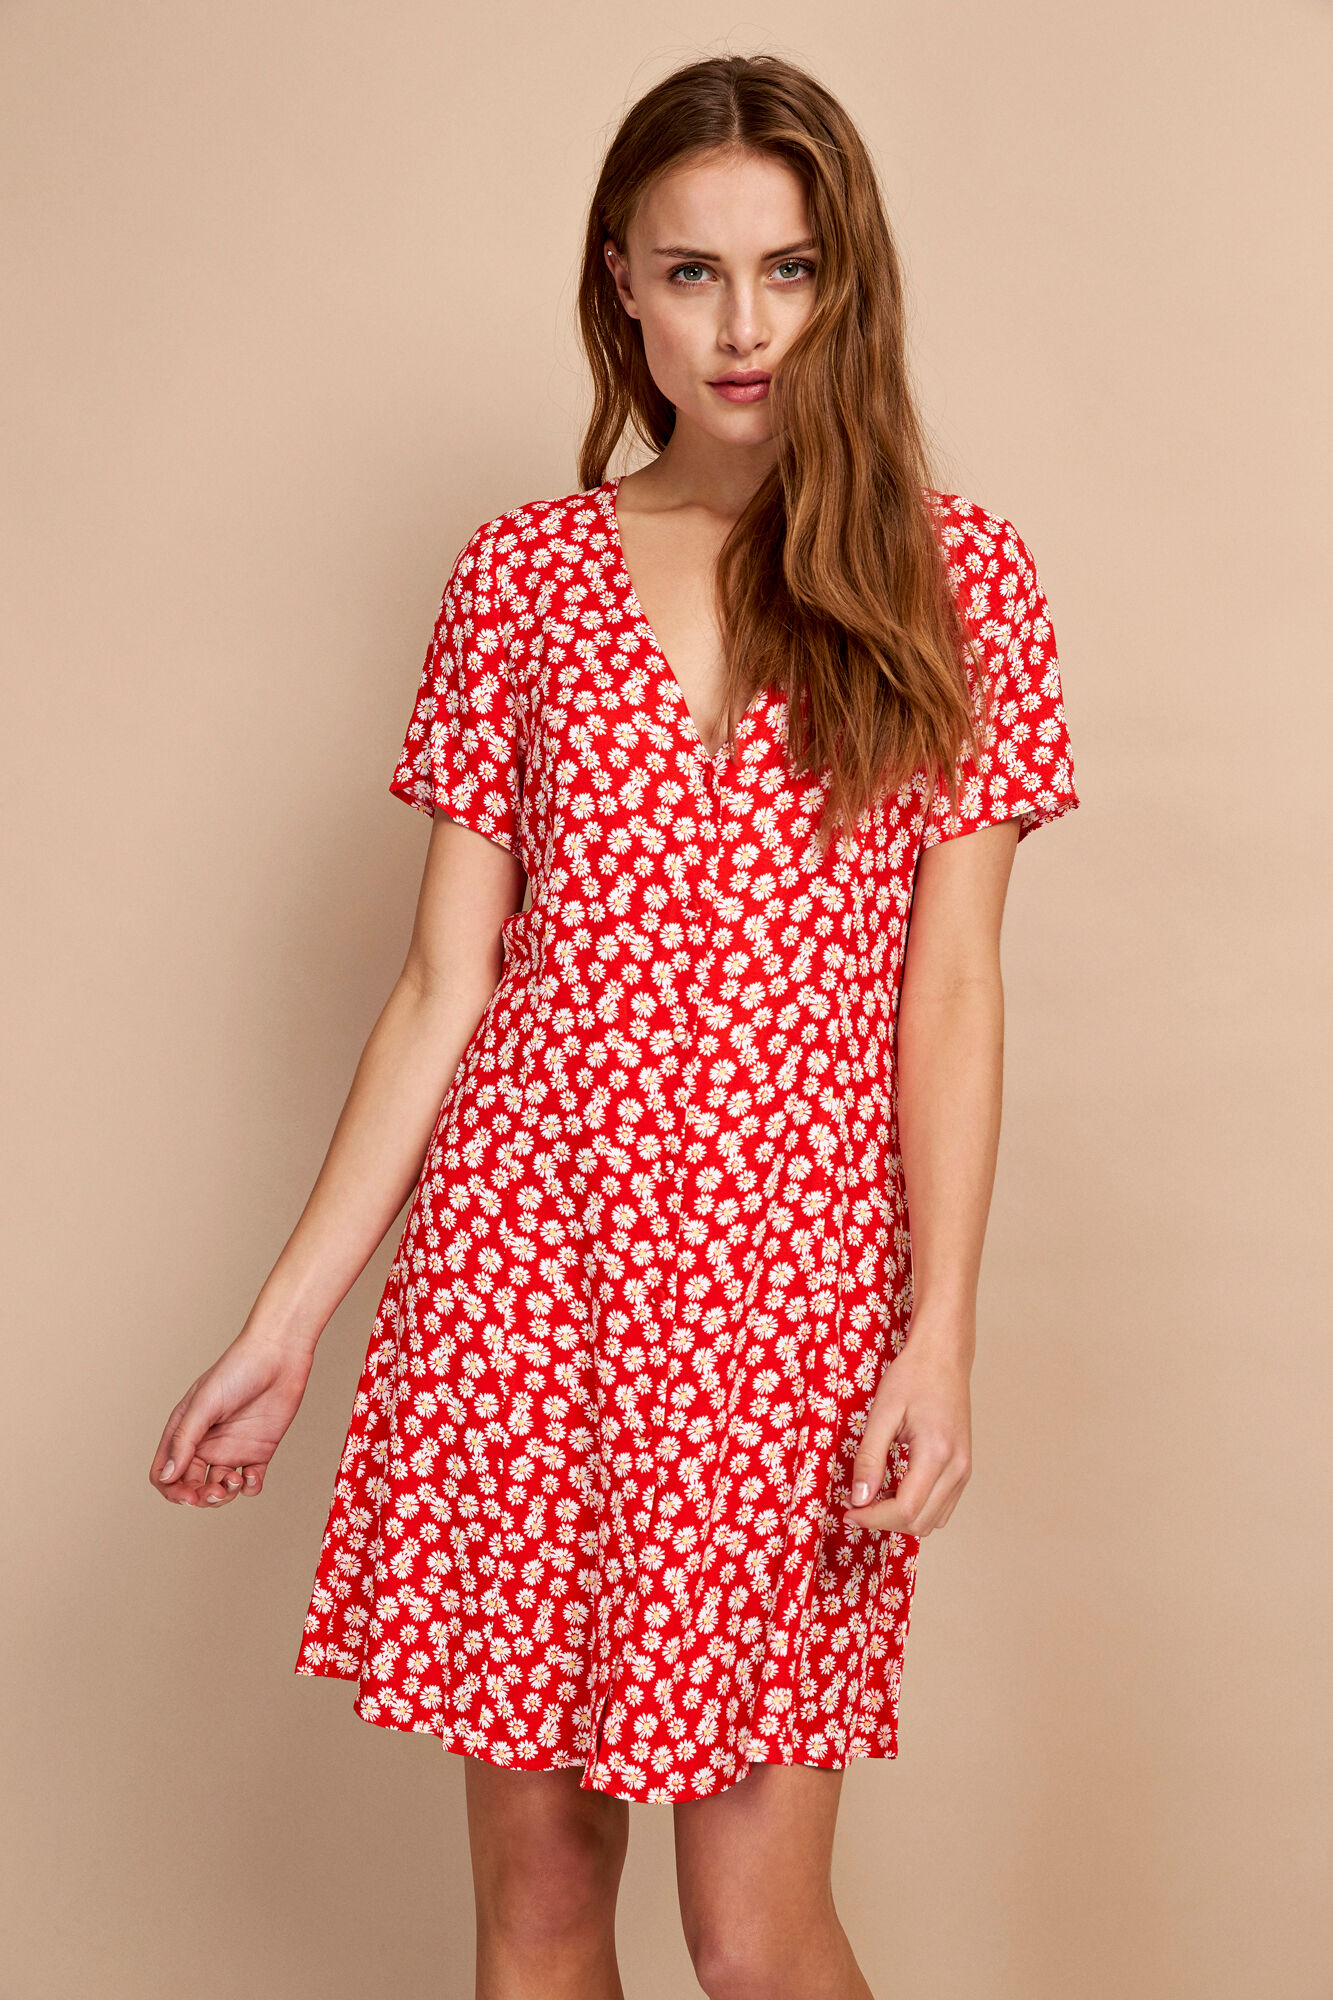 ENFAIRFAX SS DRESS AOP 6546